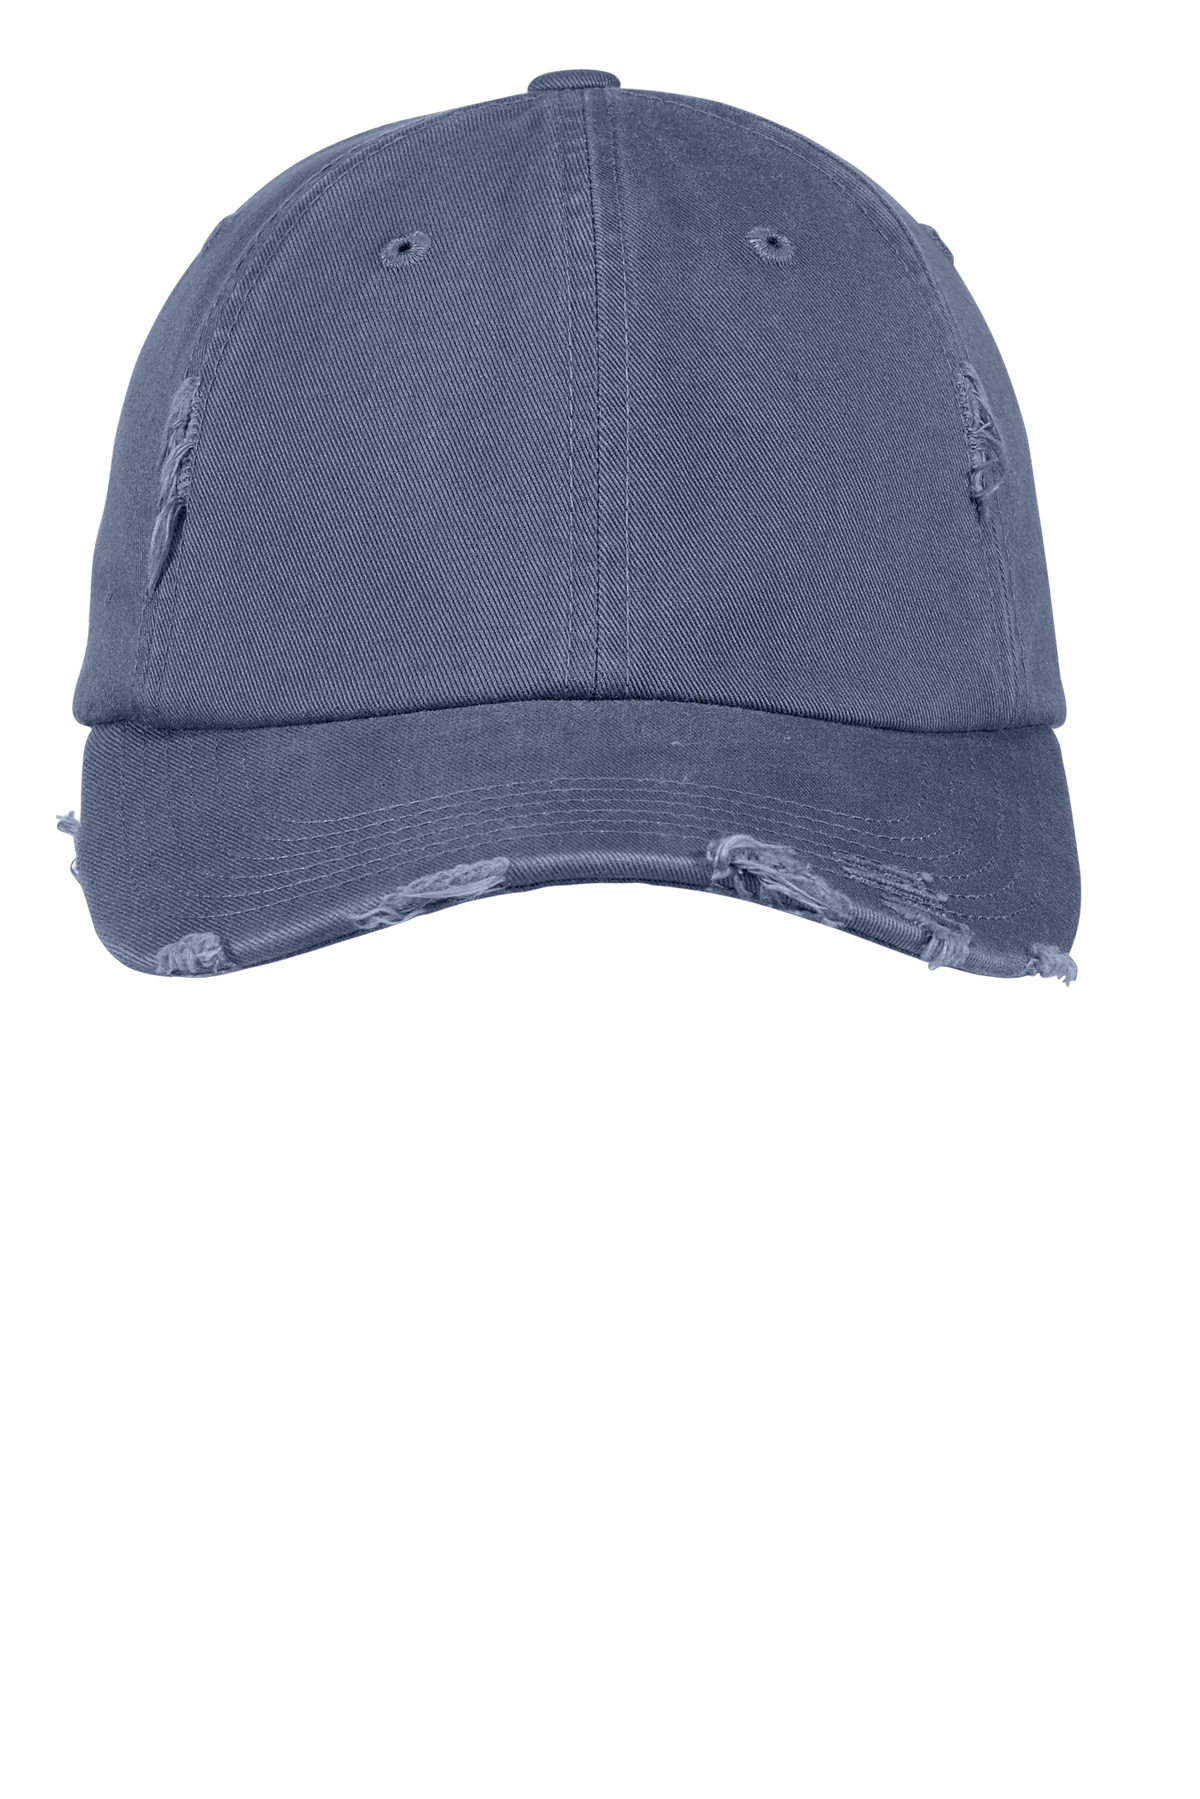 bff8bade75d ... District  District ® Distressed Cap. A maximum of 8 logos have been  uploaded. Please remove a logo from My Logos to continue